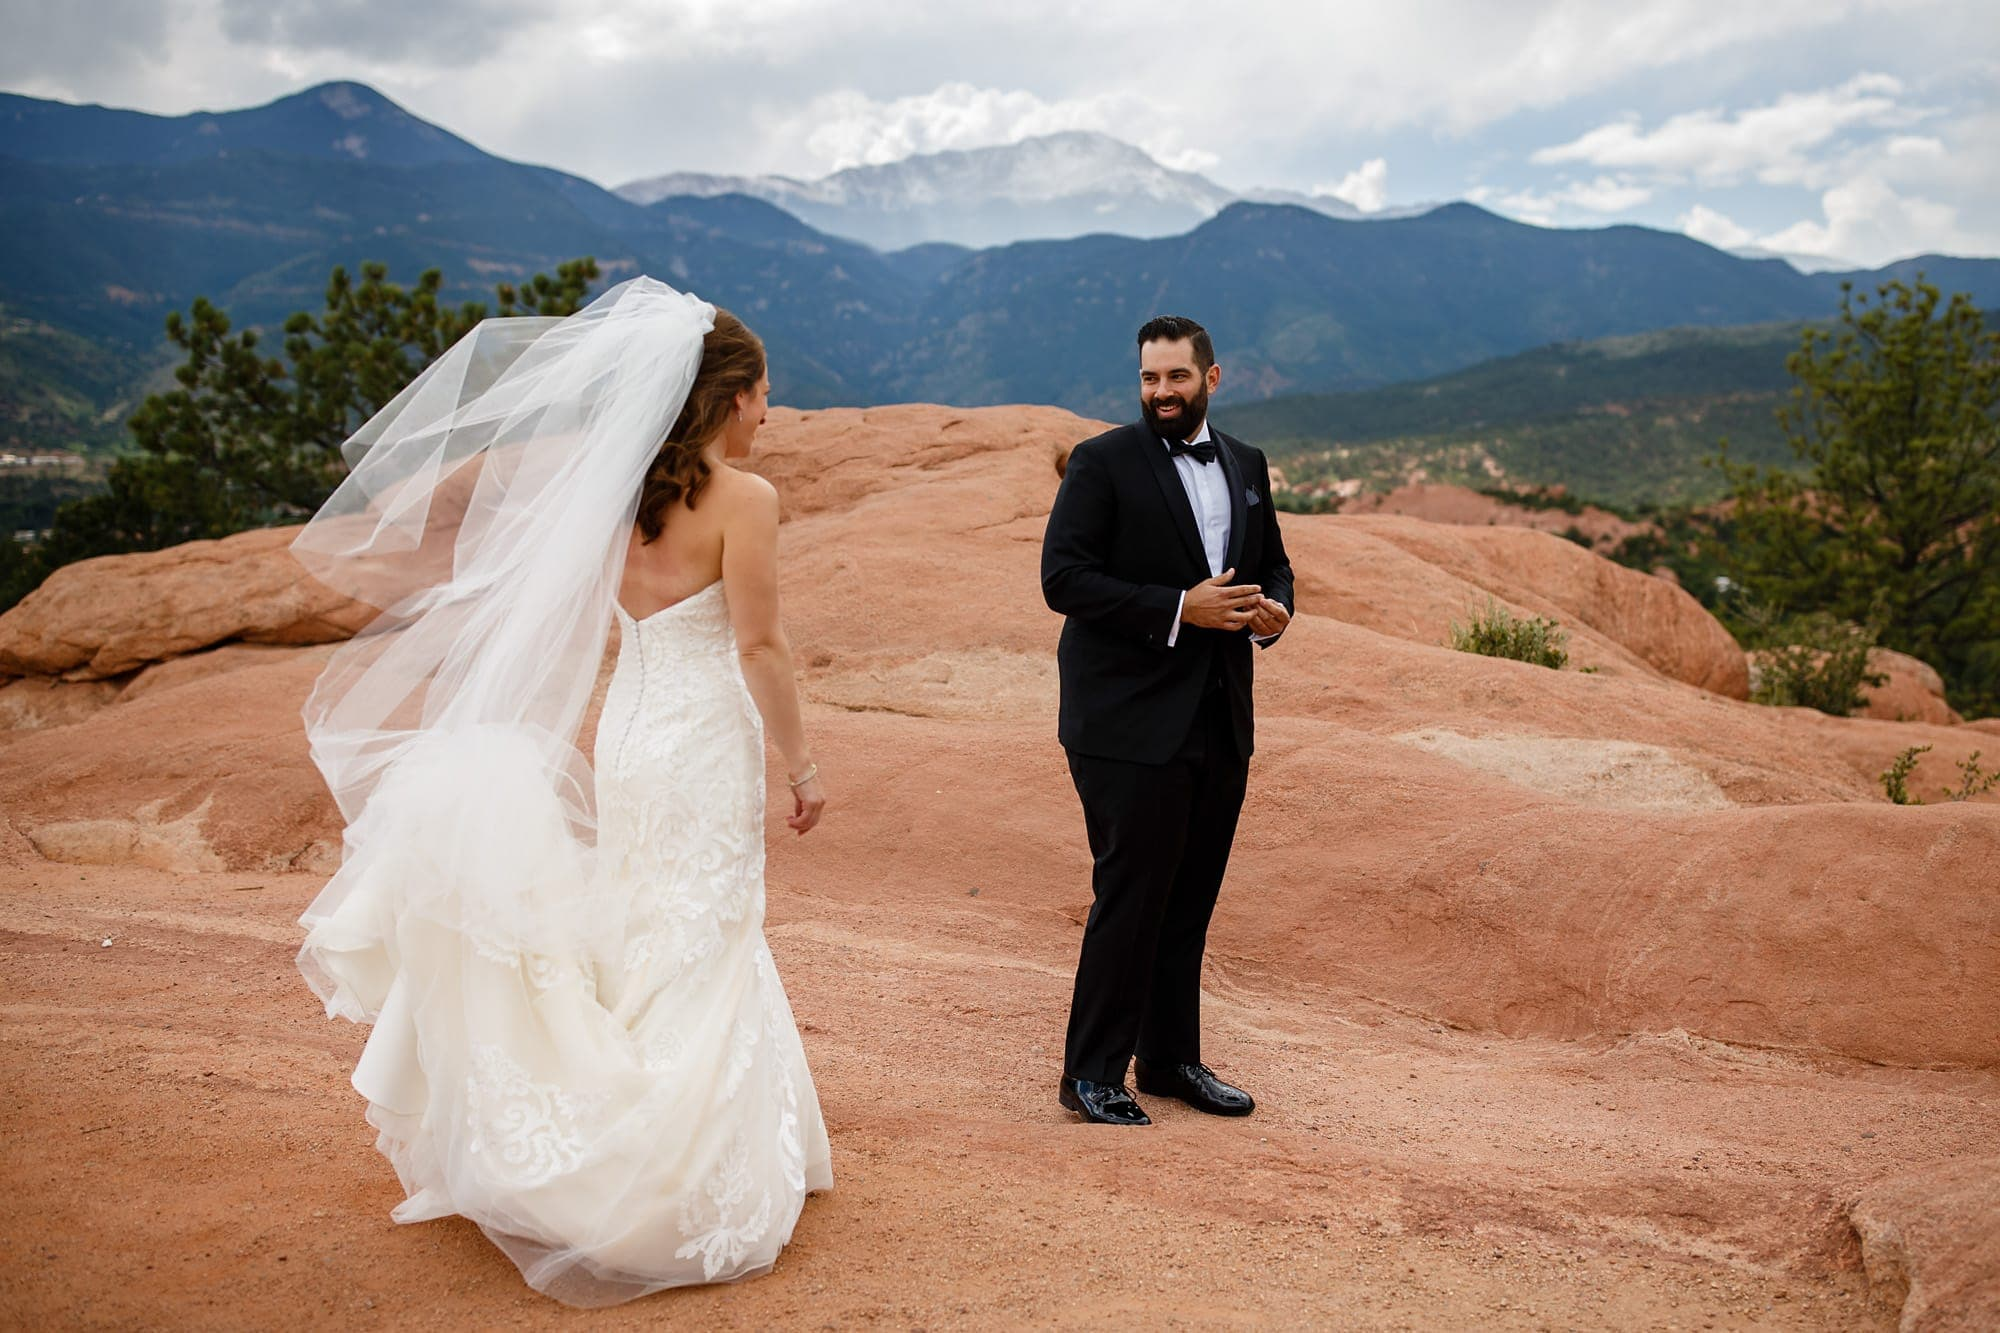 Joshua and Devan shaire thier first look in Garden of the Gods park near Pikes Peak in Colorado Springs